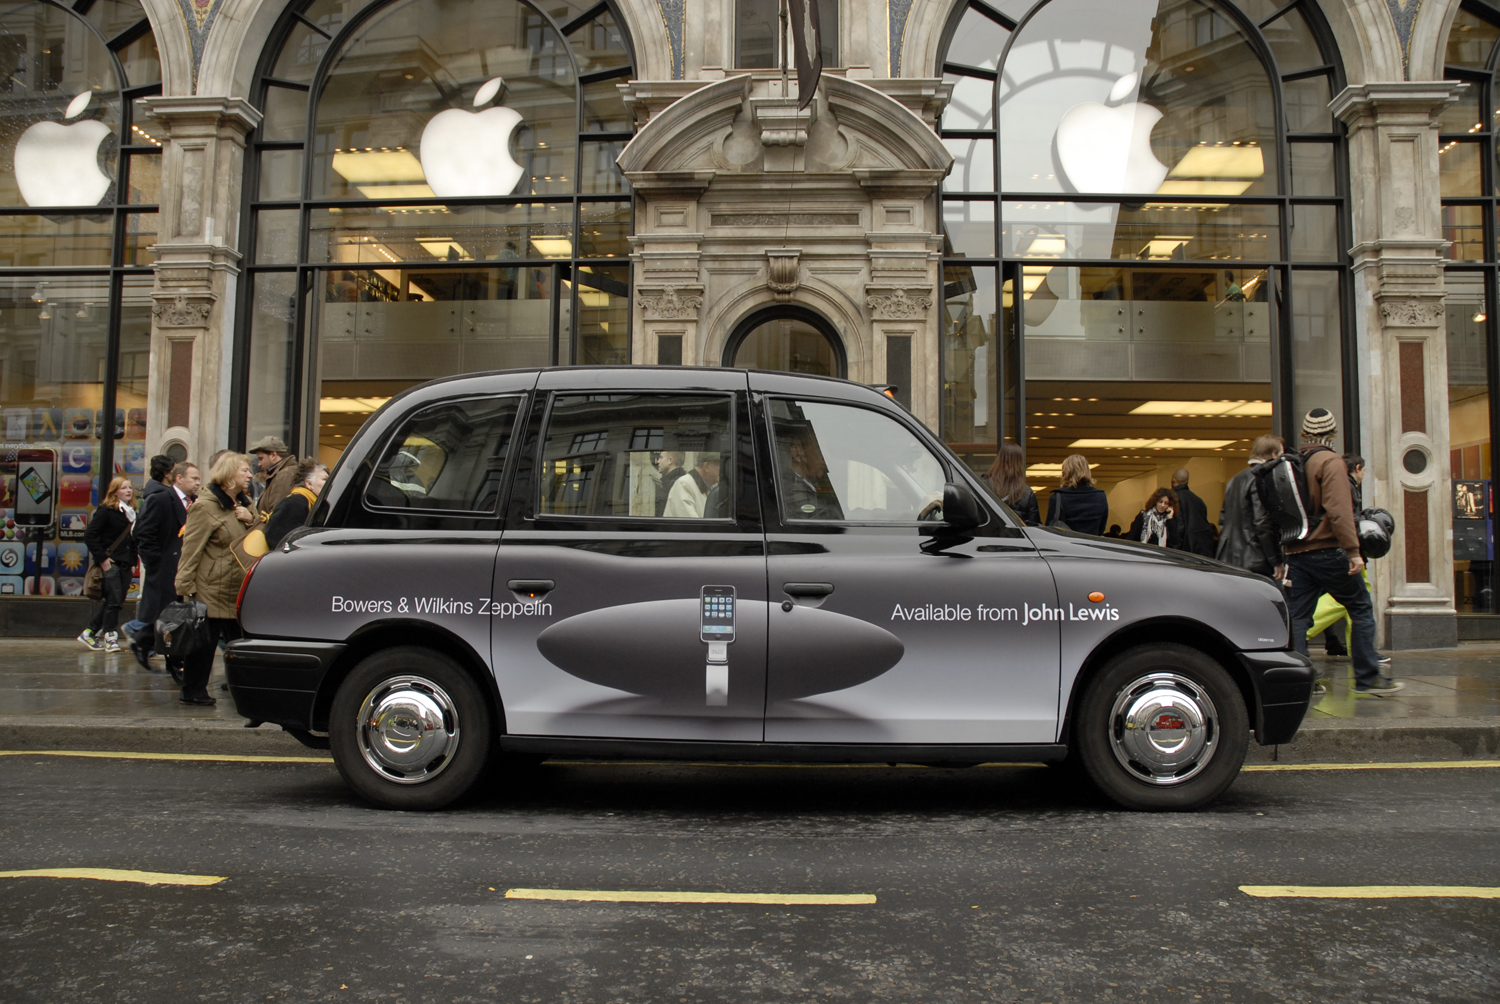 2008 Ubiquitous taxi advertising campaign for Bowers & Wilkins - Available at John Lewis